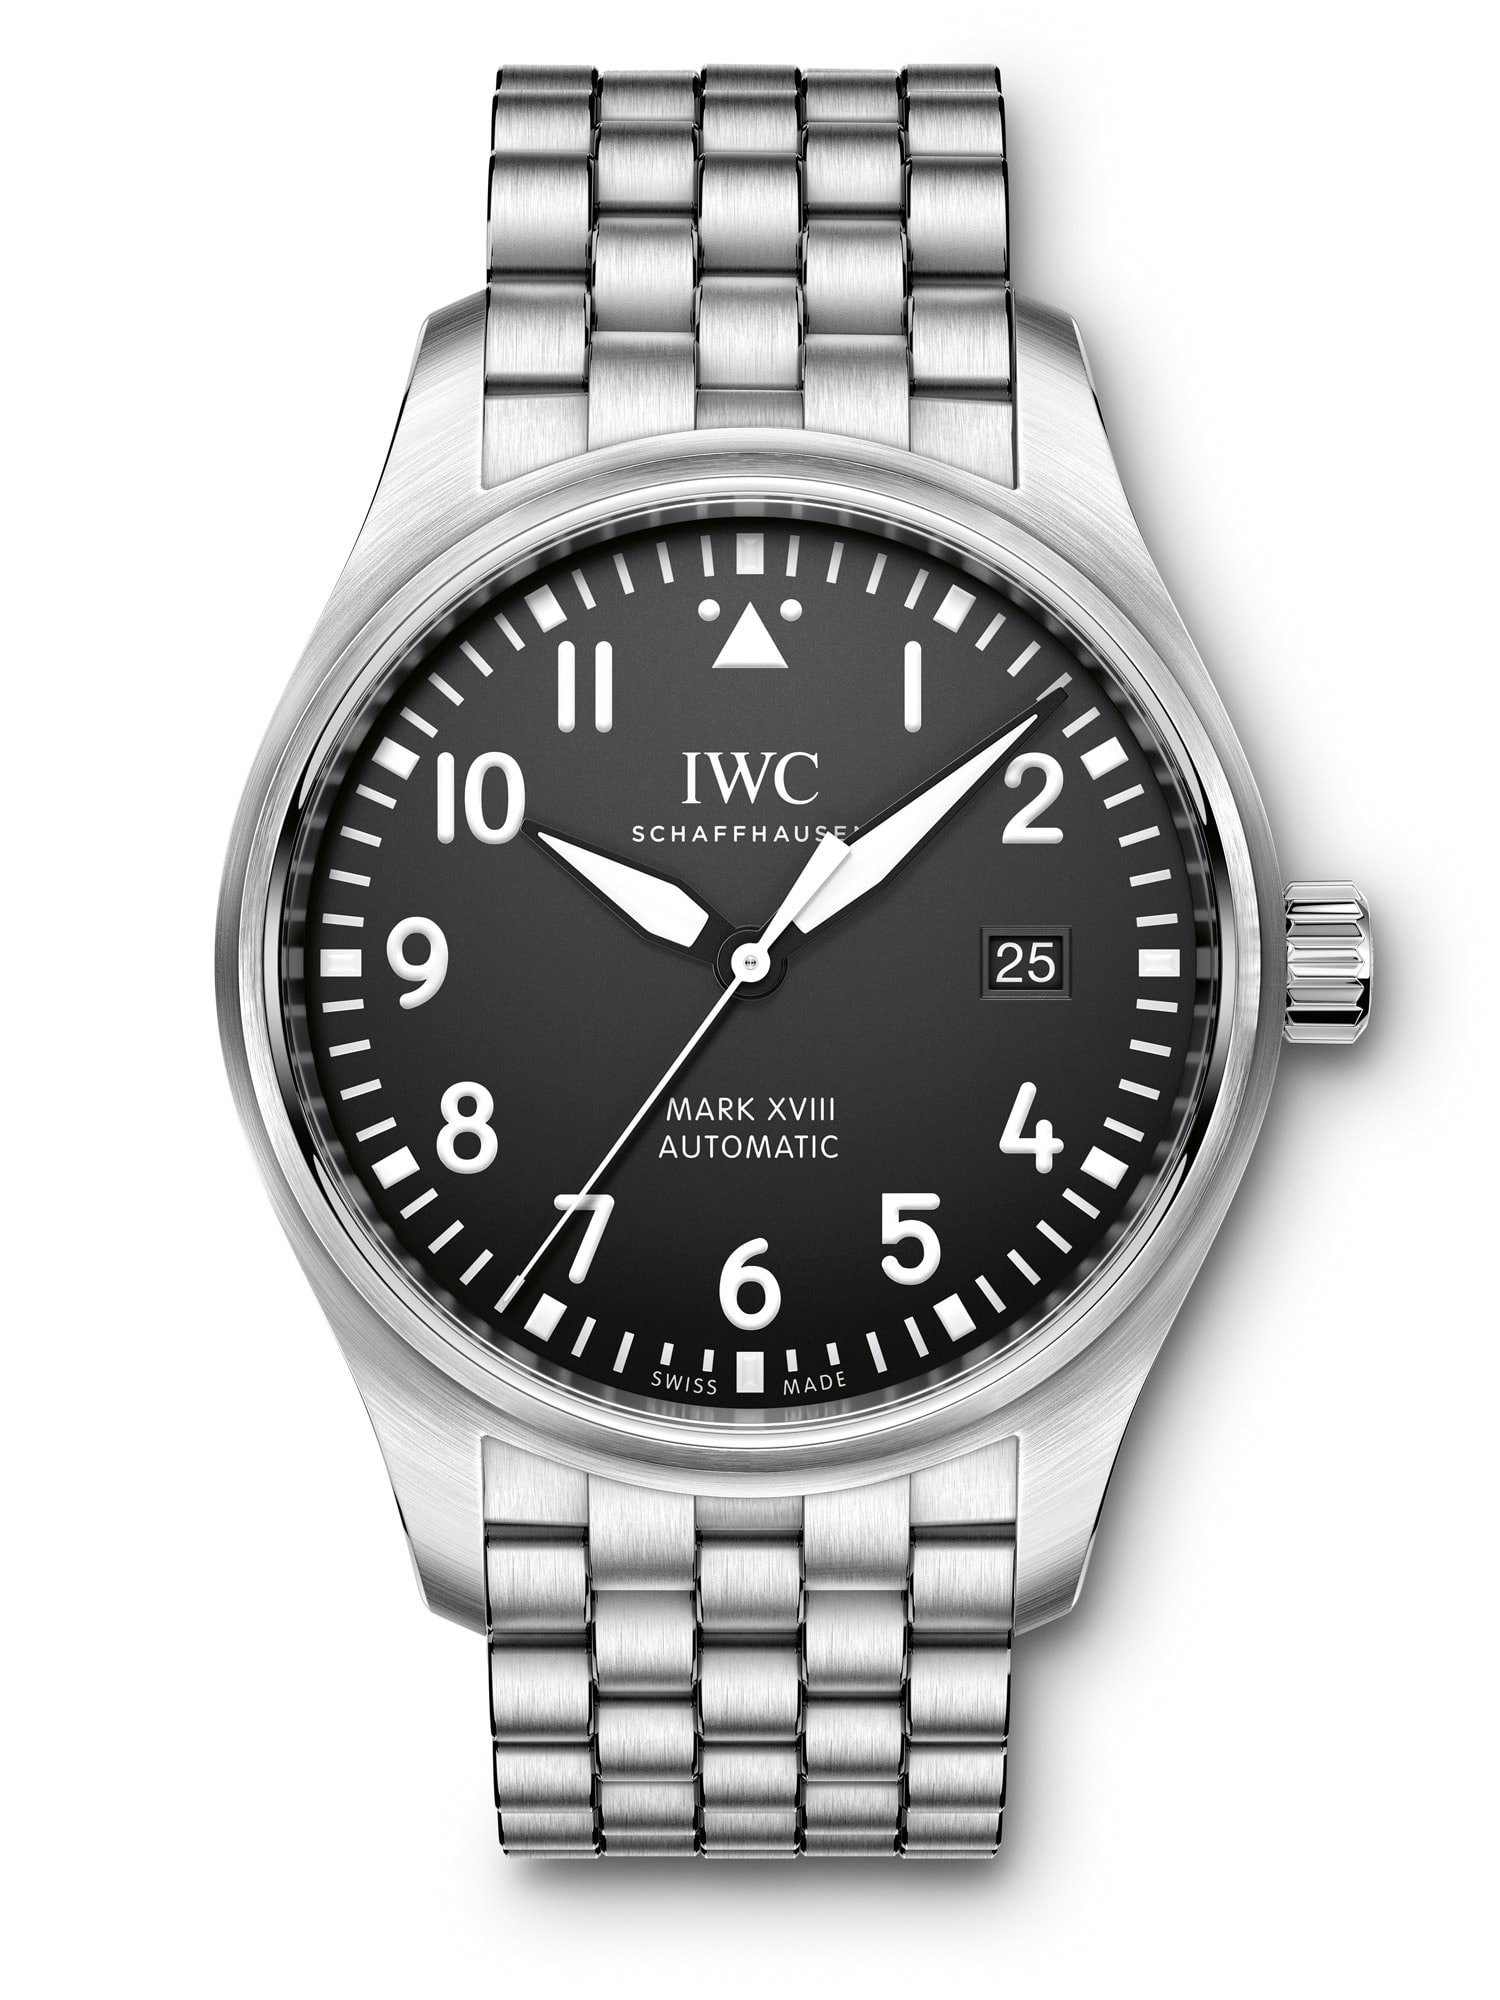 A Week On The Wrist: The Omega Seamaster Railmaster A Week On The Wrist: The Omega Seamaster Railmaster iwc